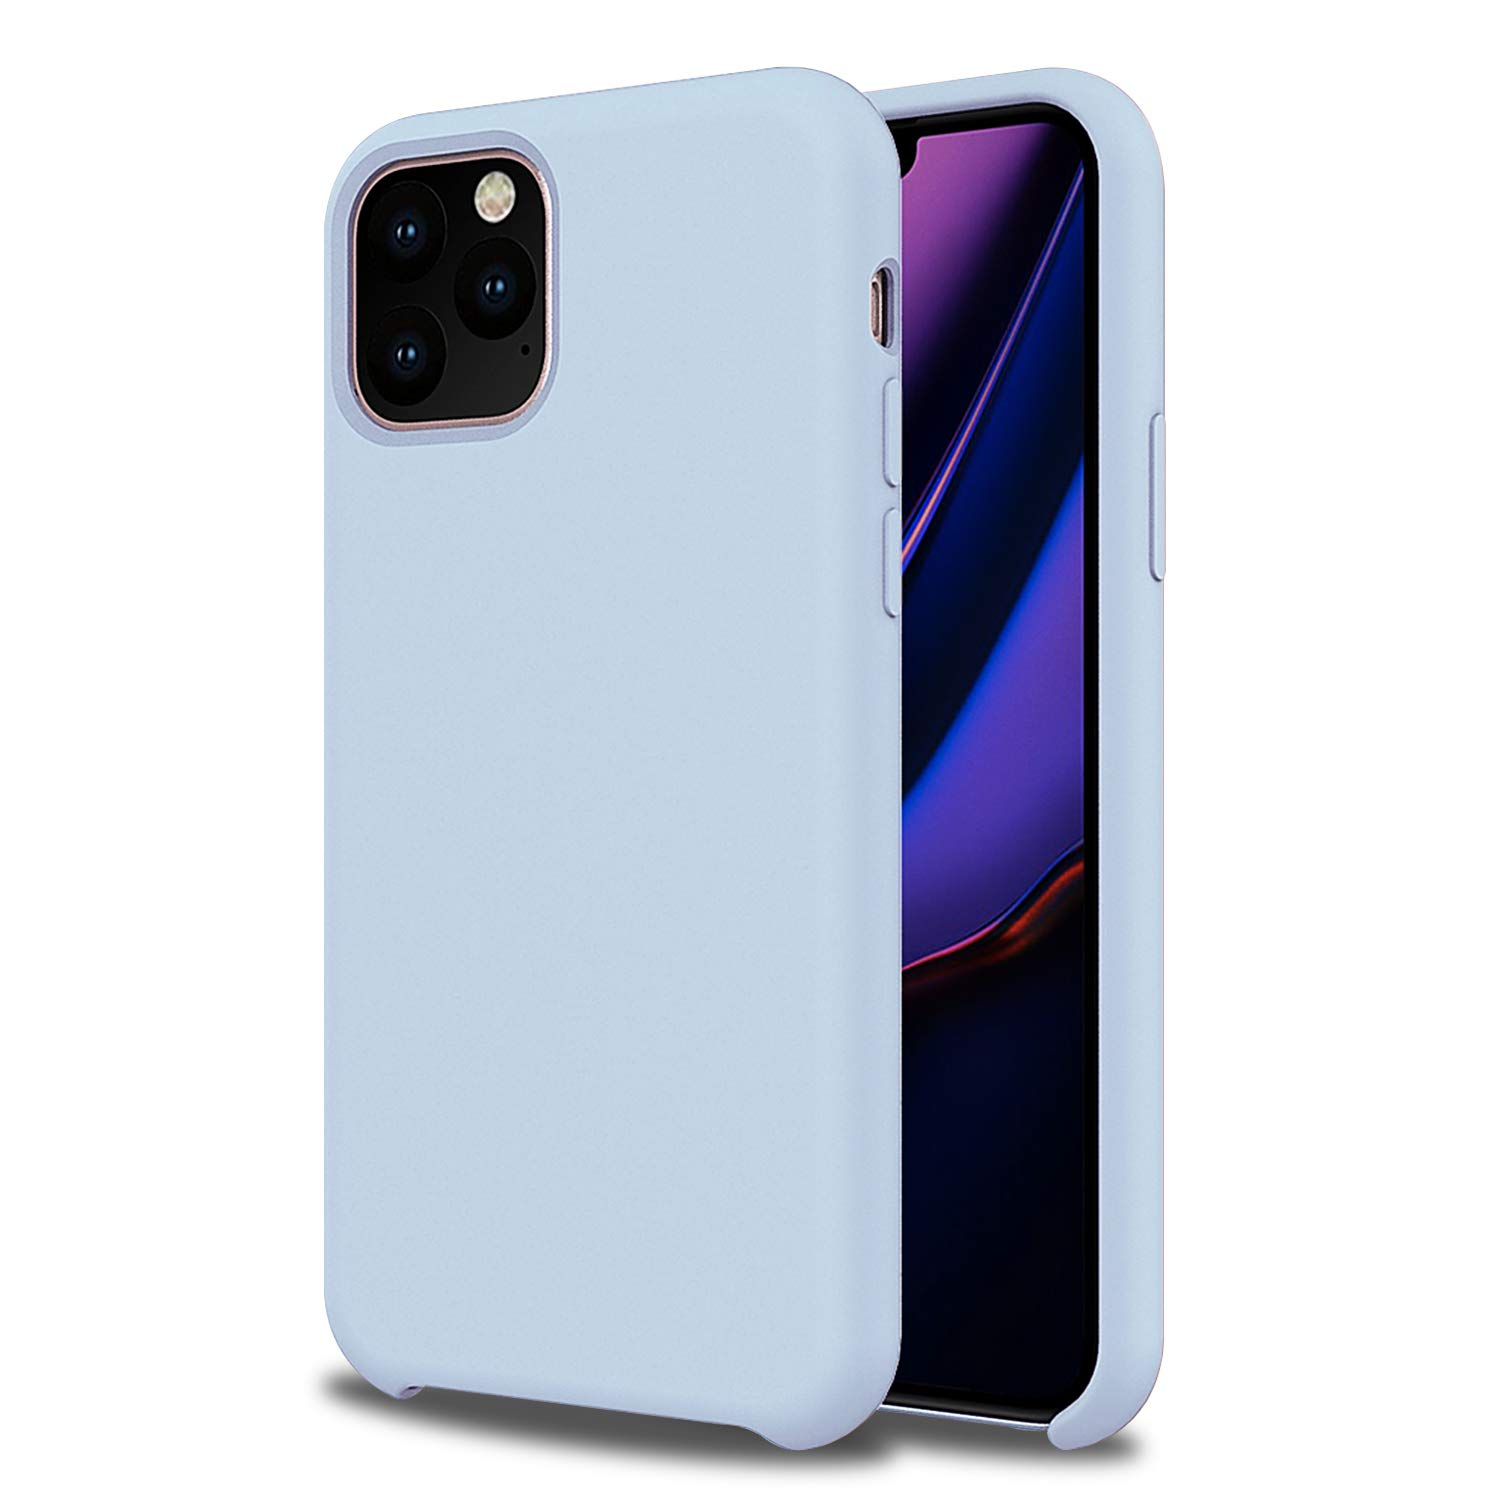 Olixar for iPhone 11 Pro Silicone Case - Soft Touch - Smooth Thin Protective Cover - Wireless Charging Compatible - Pastel Blue